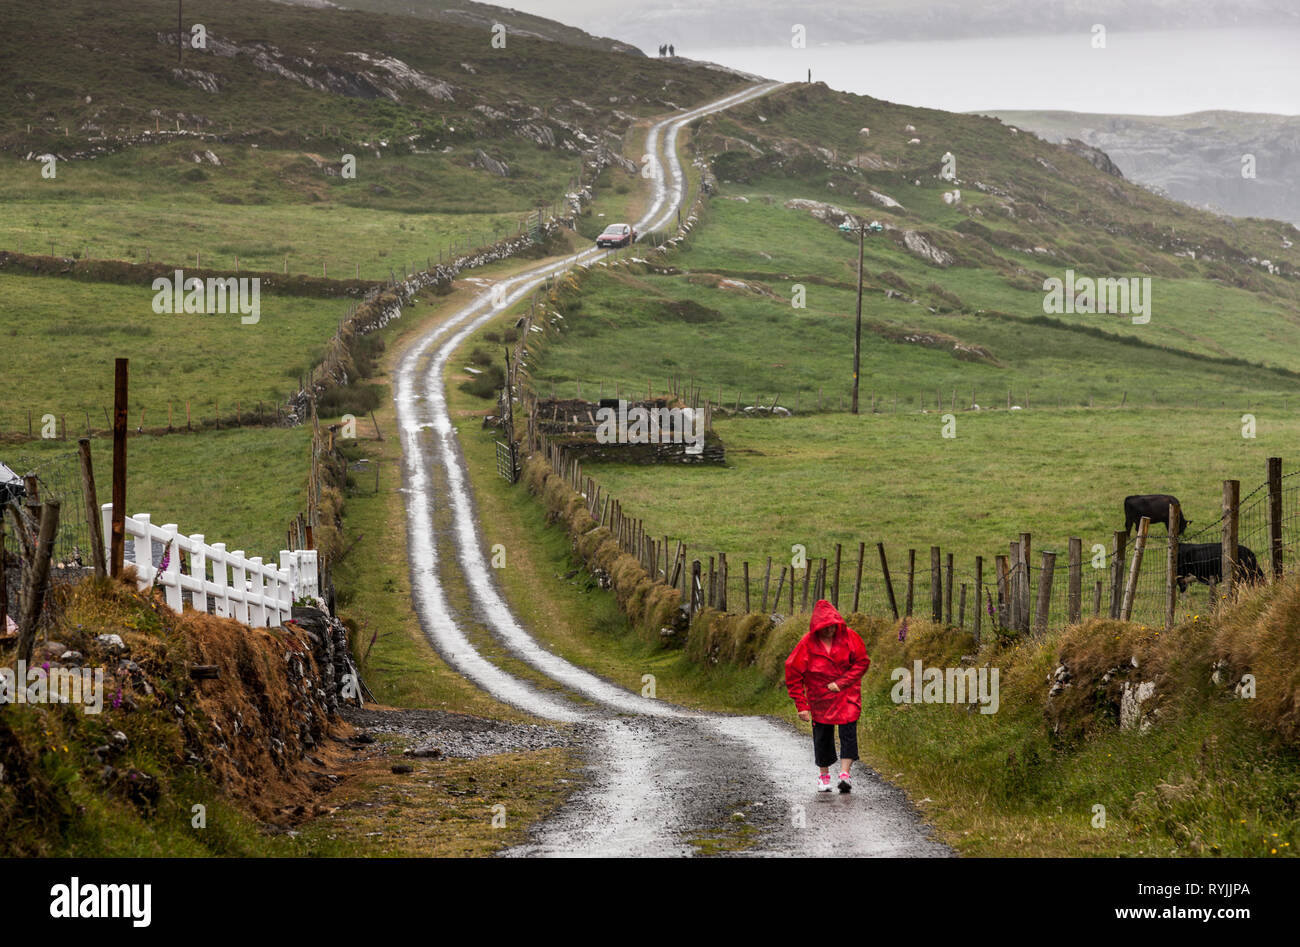 Dursey Island, Cork, Ireland. 18th June, 2016  A woman walks on the main road on a wet day in the townland of Kilmichael on Dursey Island, Co. Cork, I - Stock Image